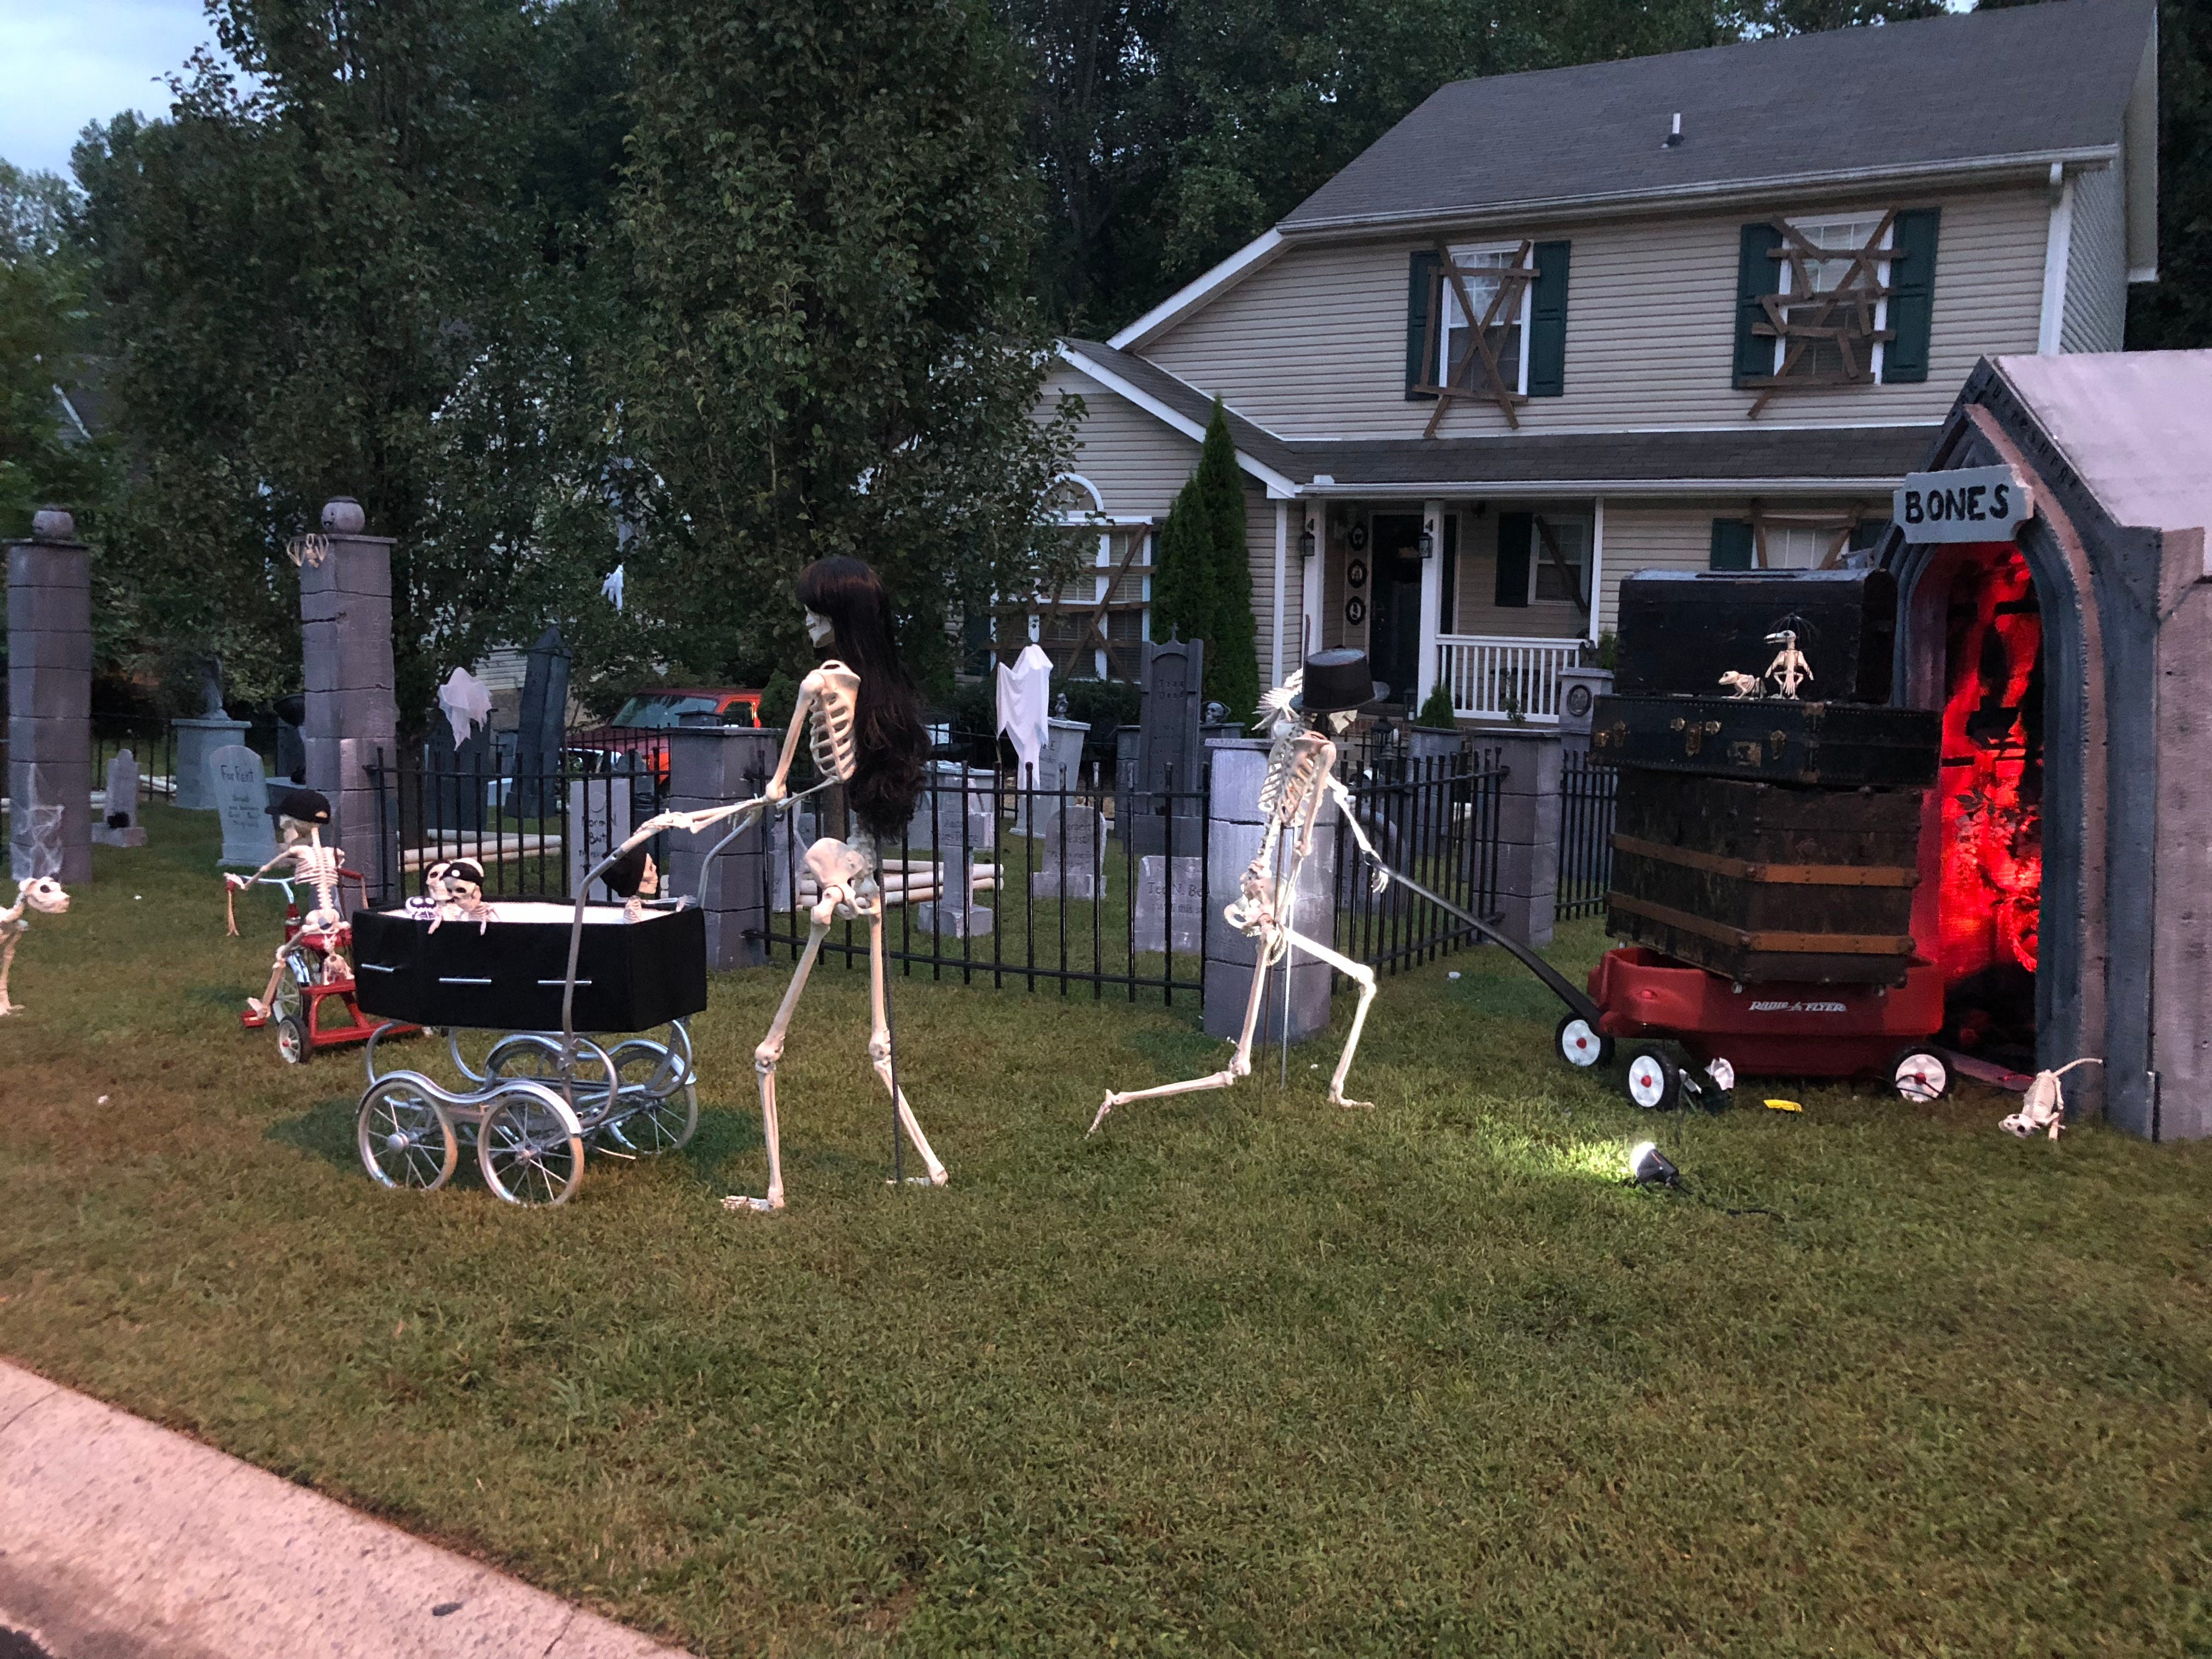 The Bones Arive To Their Annual Vacation Spot